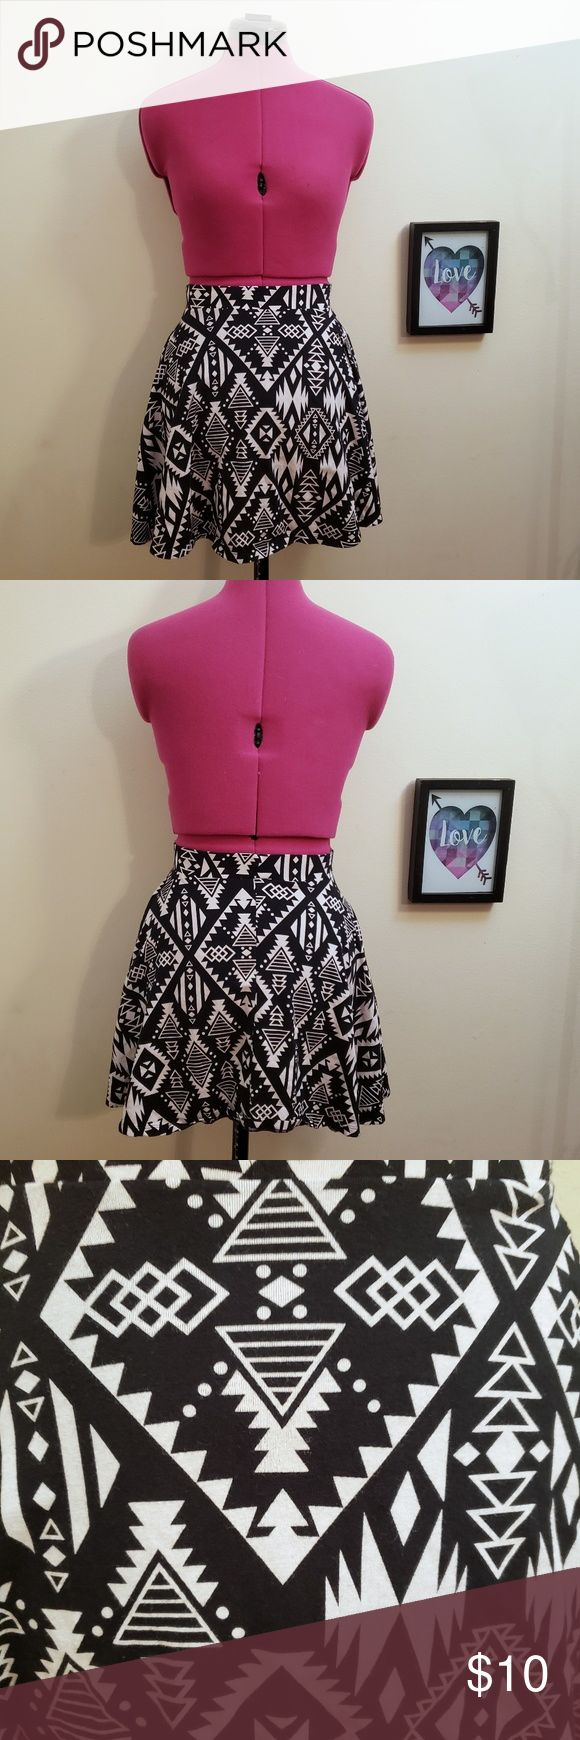 ♧ PINK Brand Geometric Skater Skirt Black and white skater skirt by PINK with ...